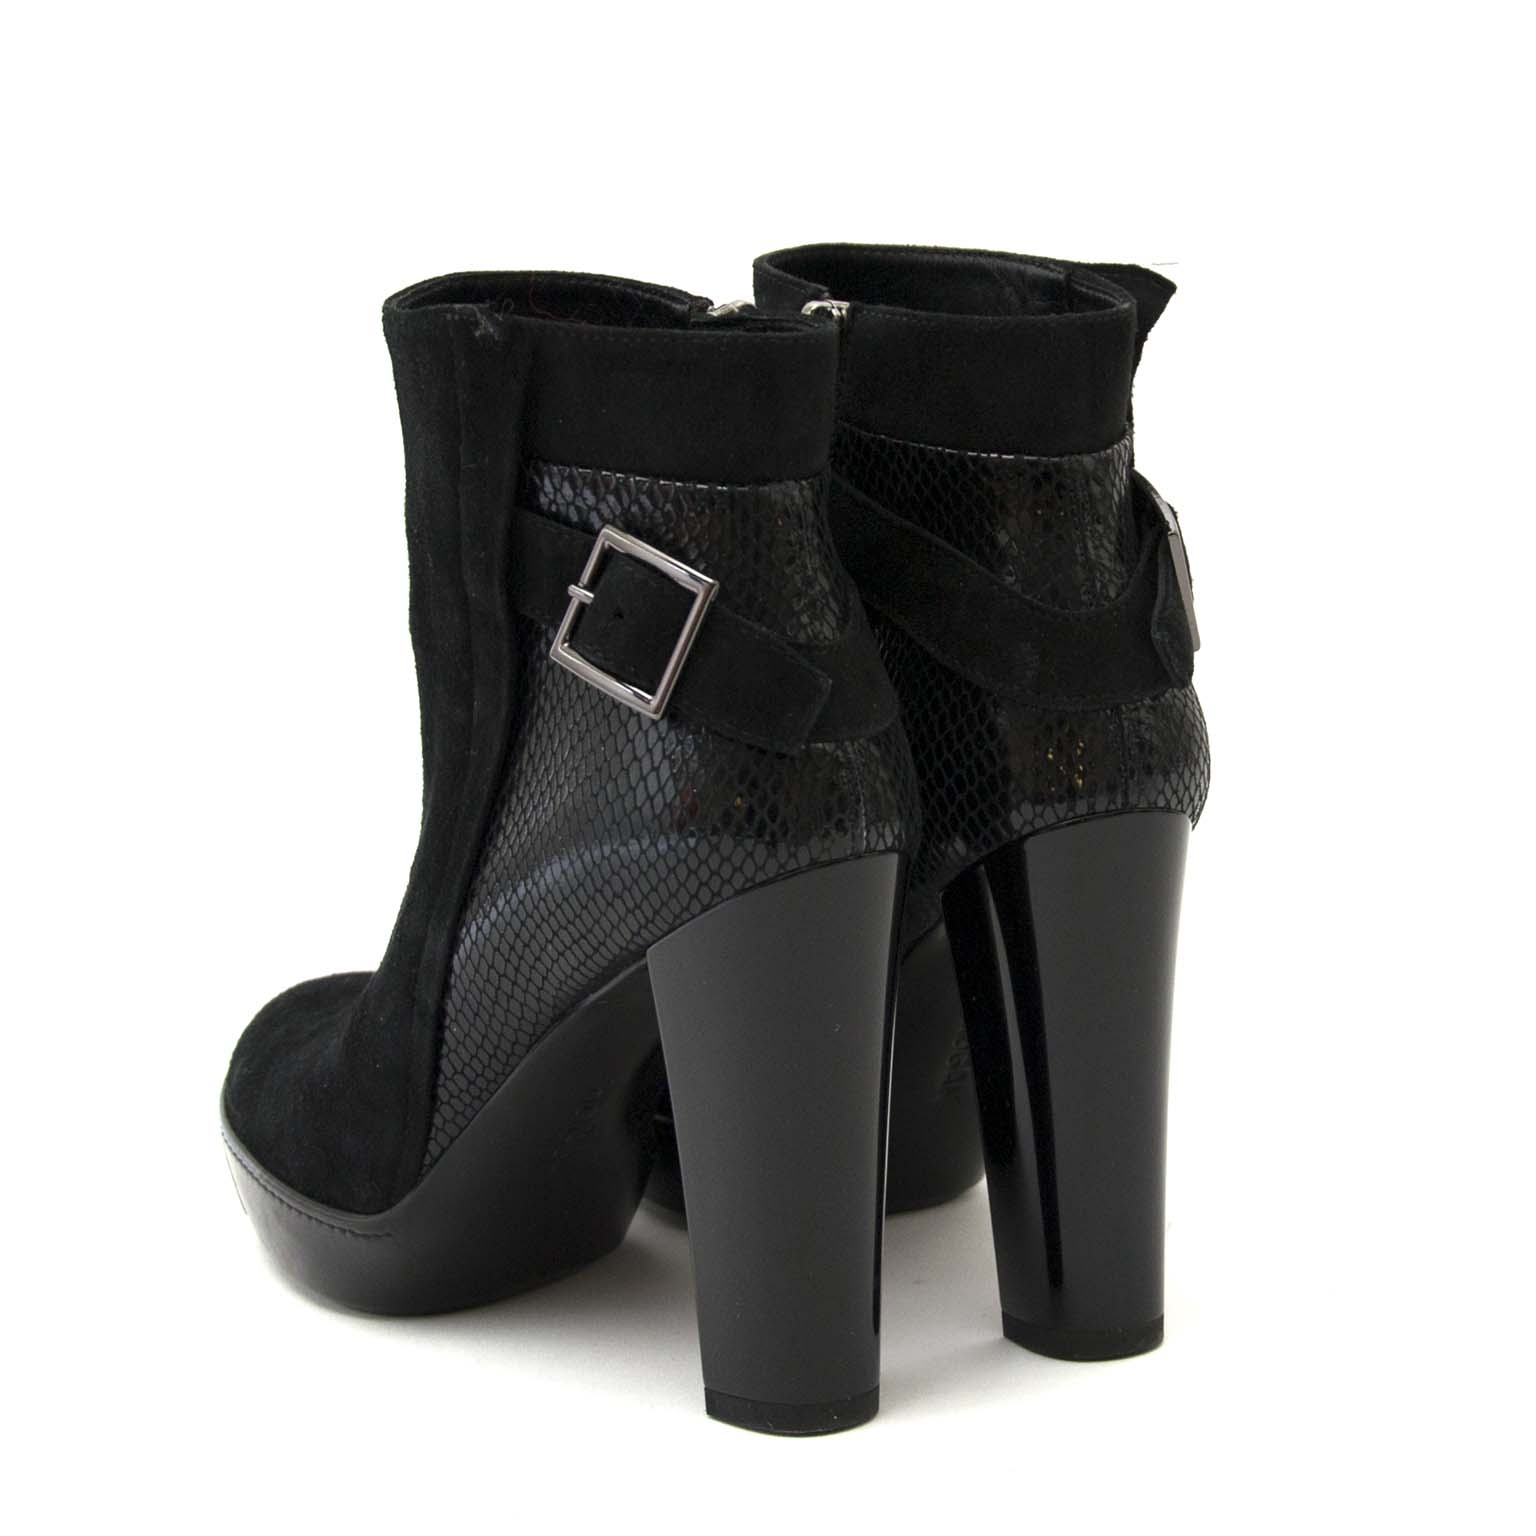 hogan black suede ankle boots now for sale at labellov vintage fashion webshop belgium